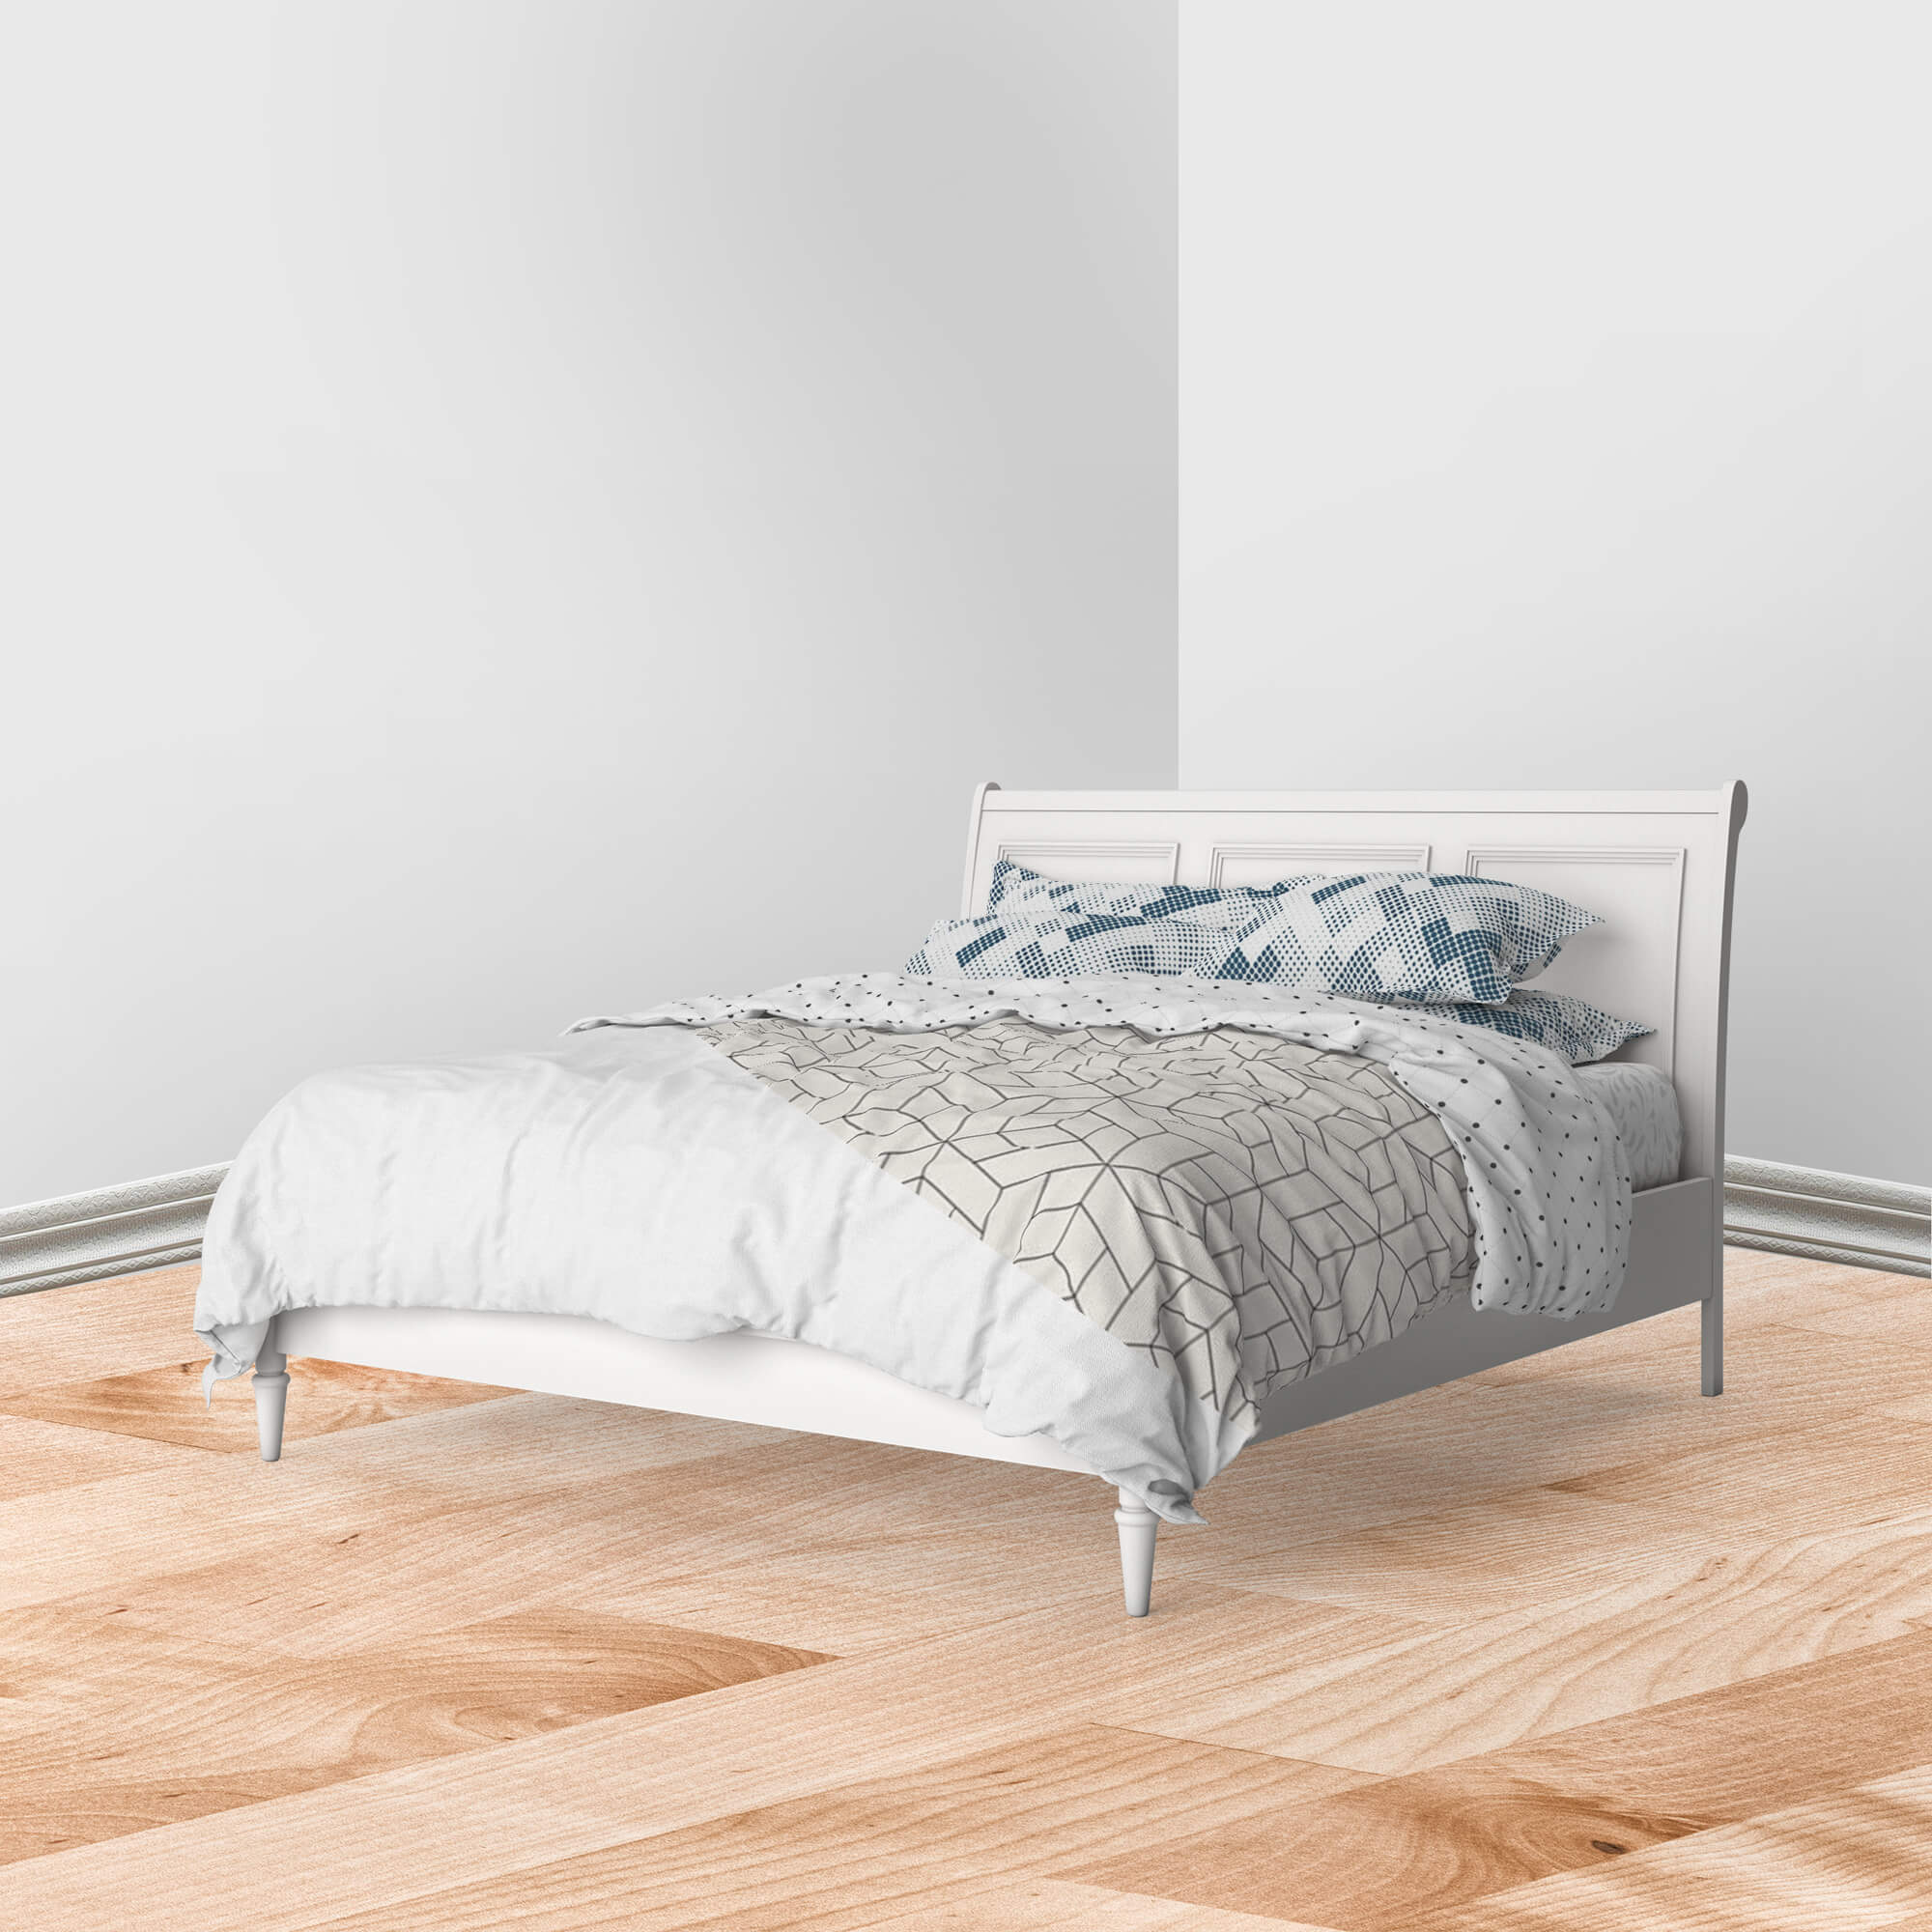 Editable Free Bed Linen Mockup PSD Template